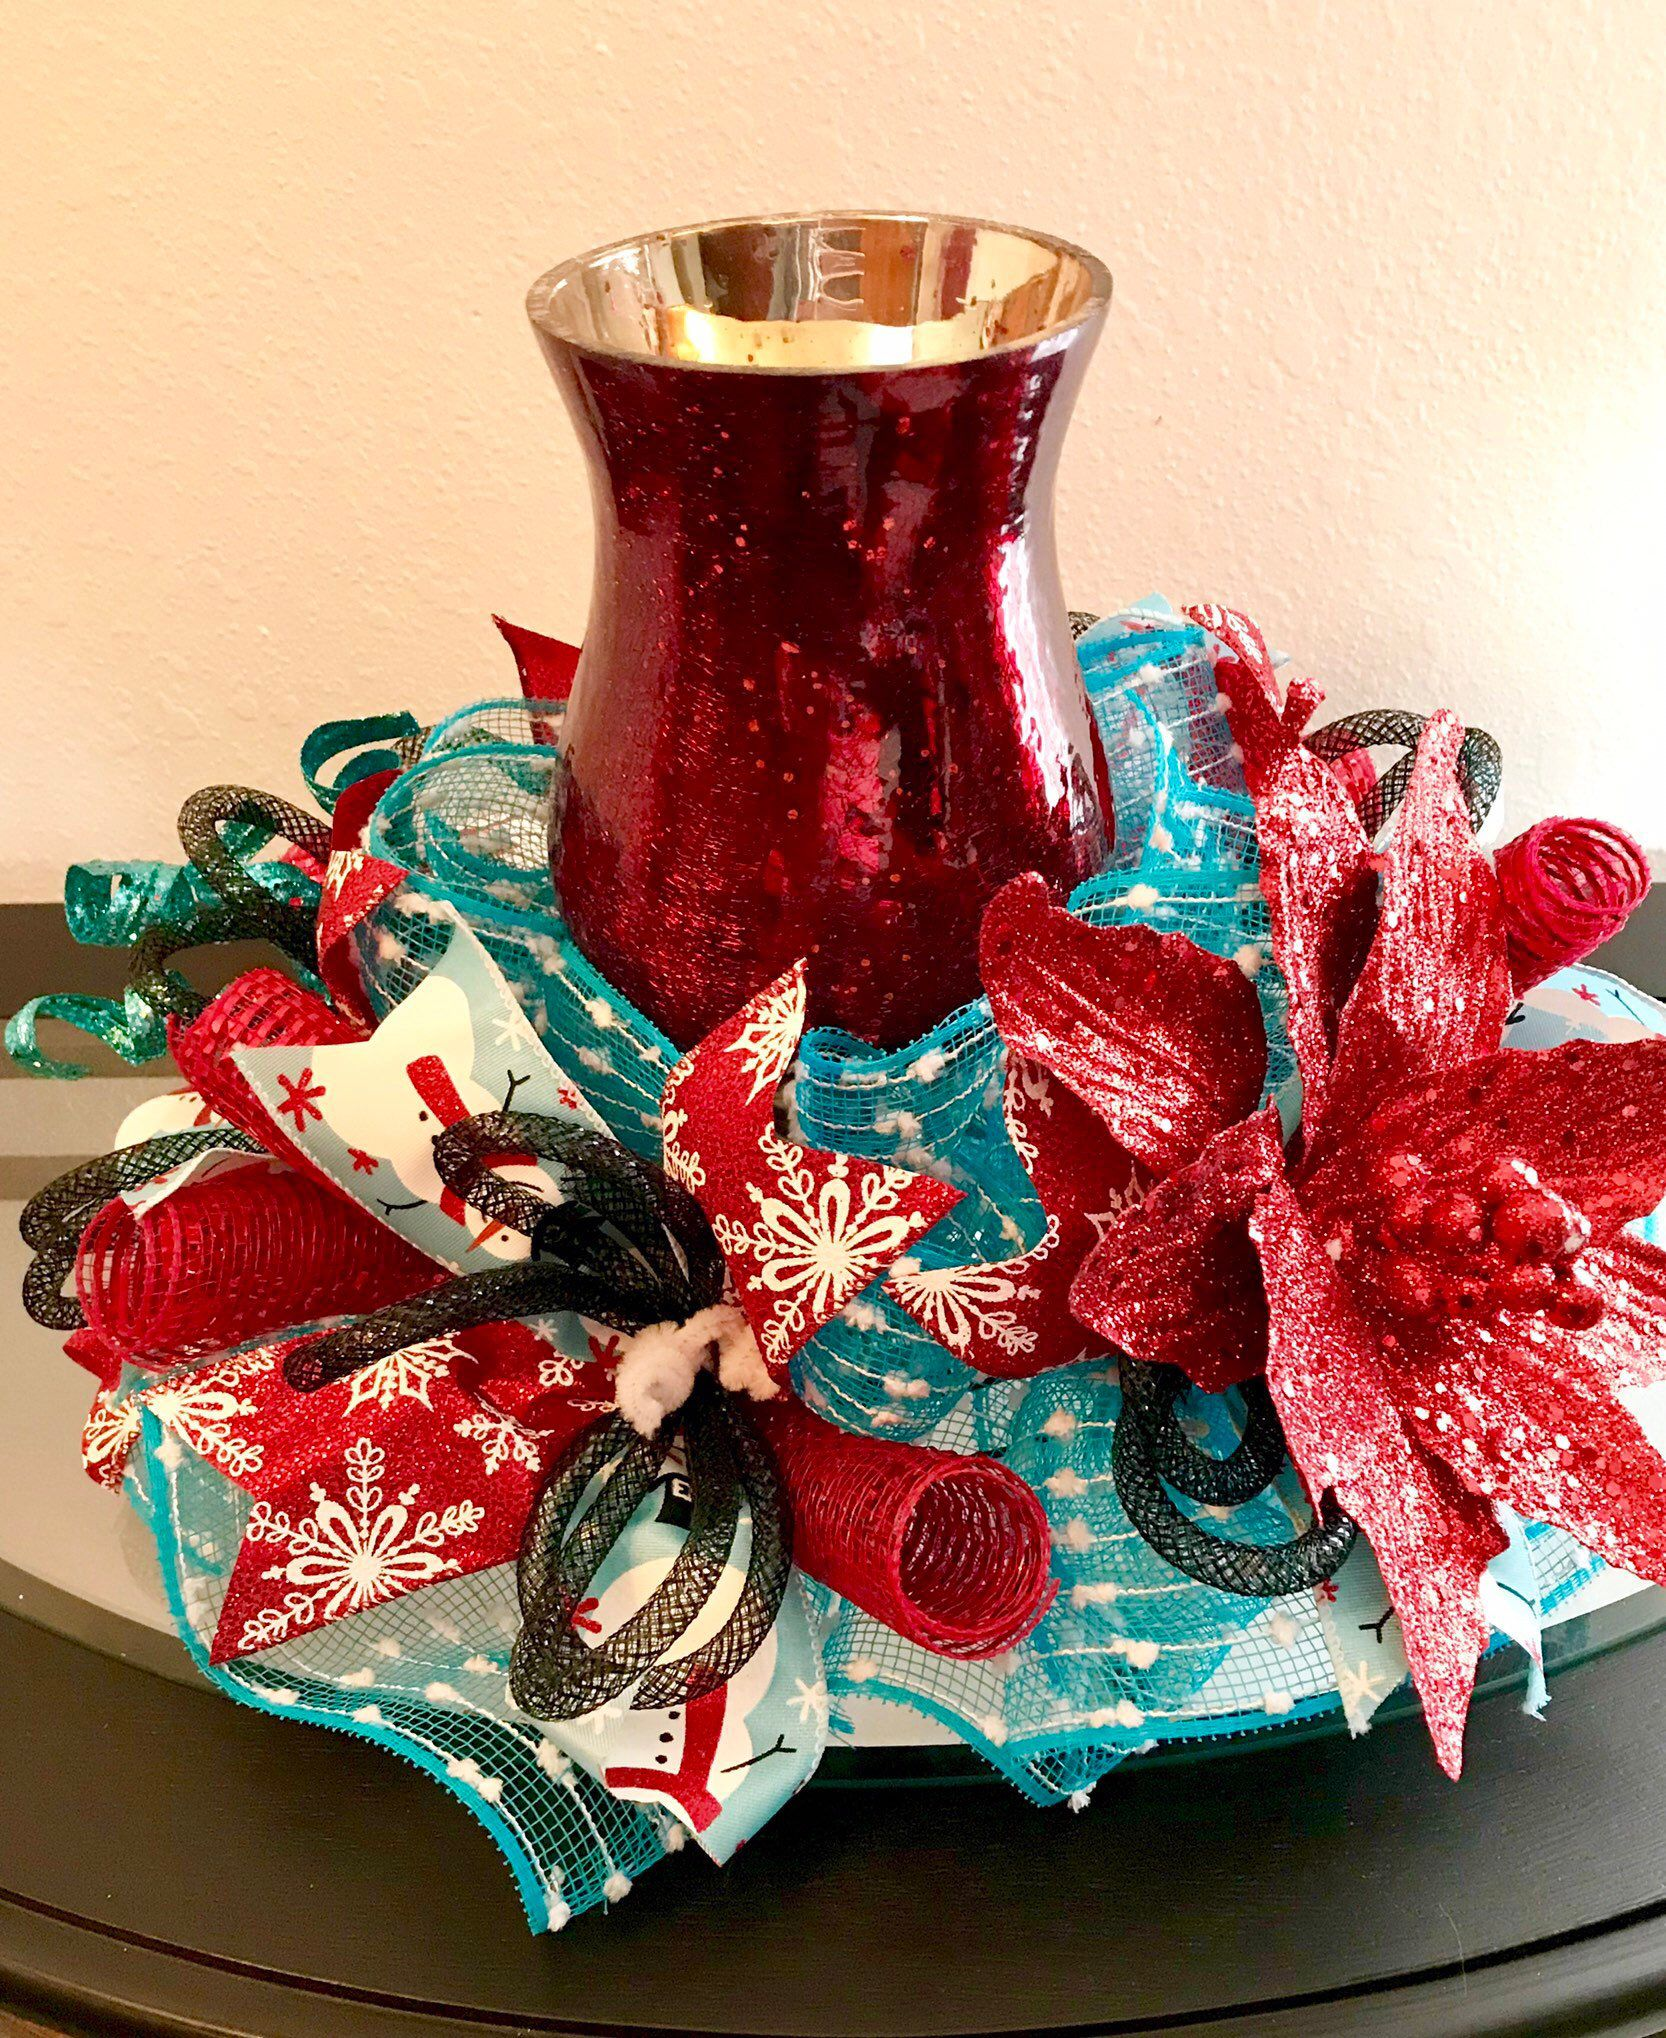 Deco Mesh Christmas Centerpiece Red And Teal Table Decor Holiday Centerpie